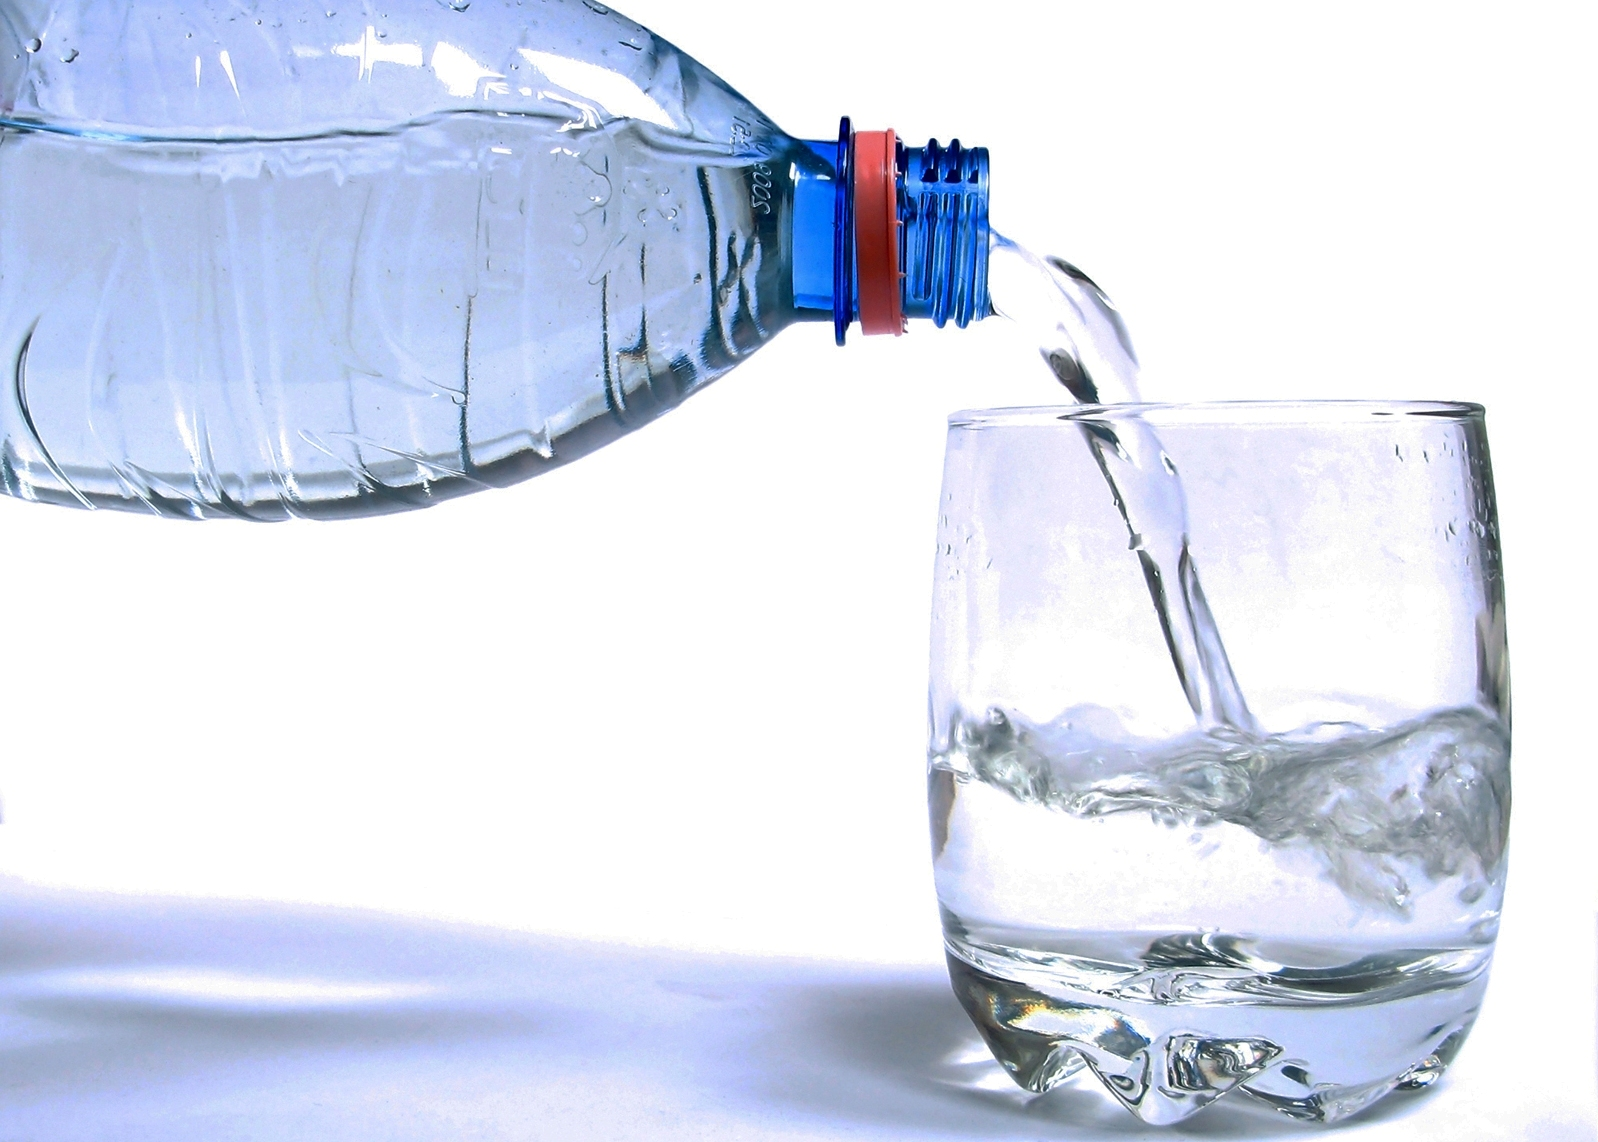 Caution sounded on drinking water risks